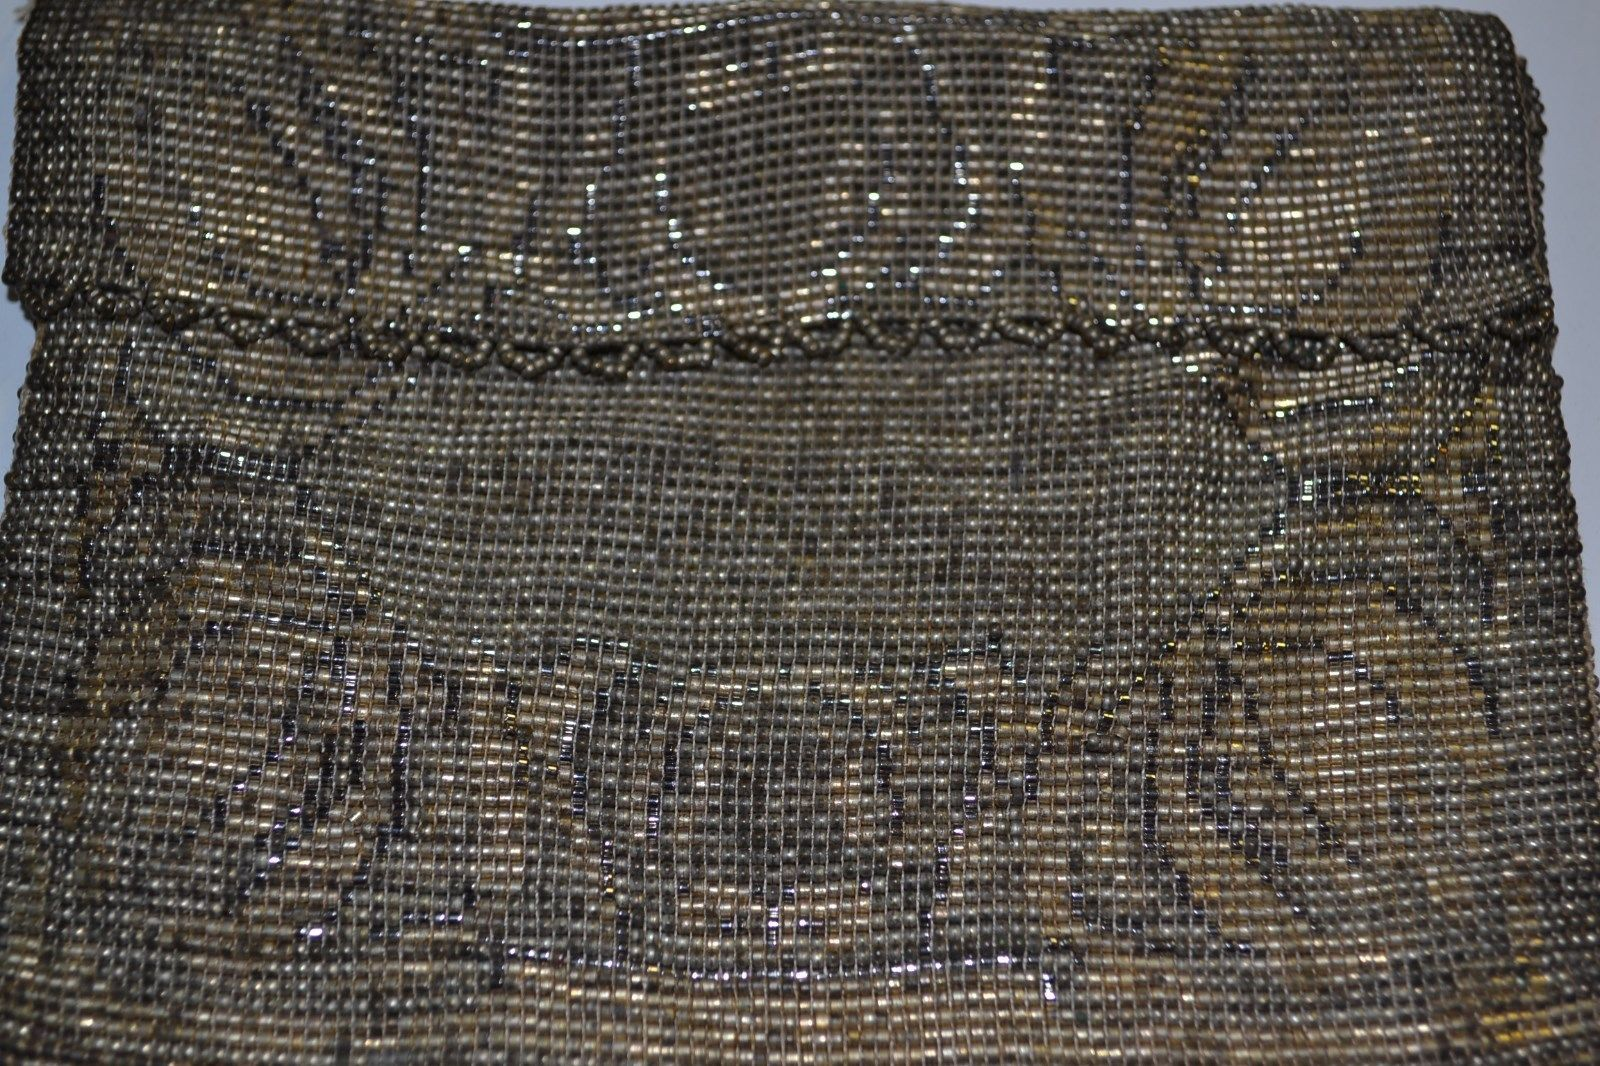 2 Vintage Art Deco Micro Beaded Flapper Bags Purses with Silk Lining: One Gold Beaded Clutch Wallet